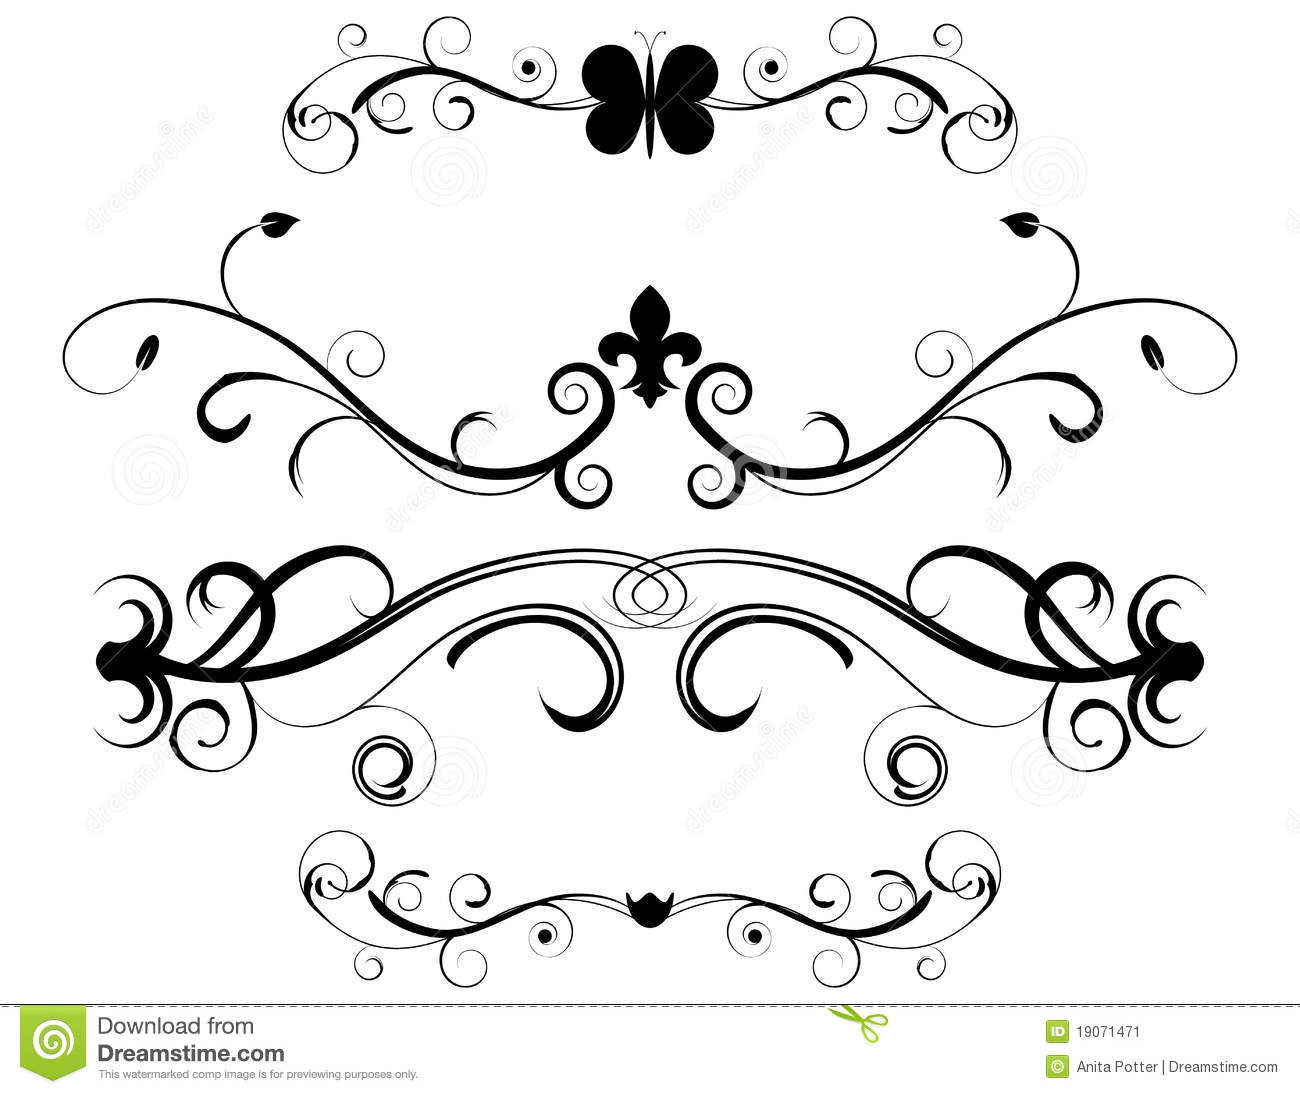 Decorative Page Dividers Stock Photos - Image: 16724813